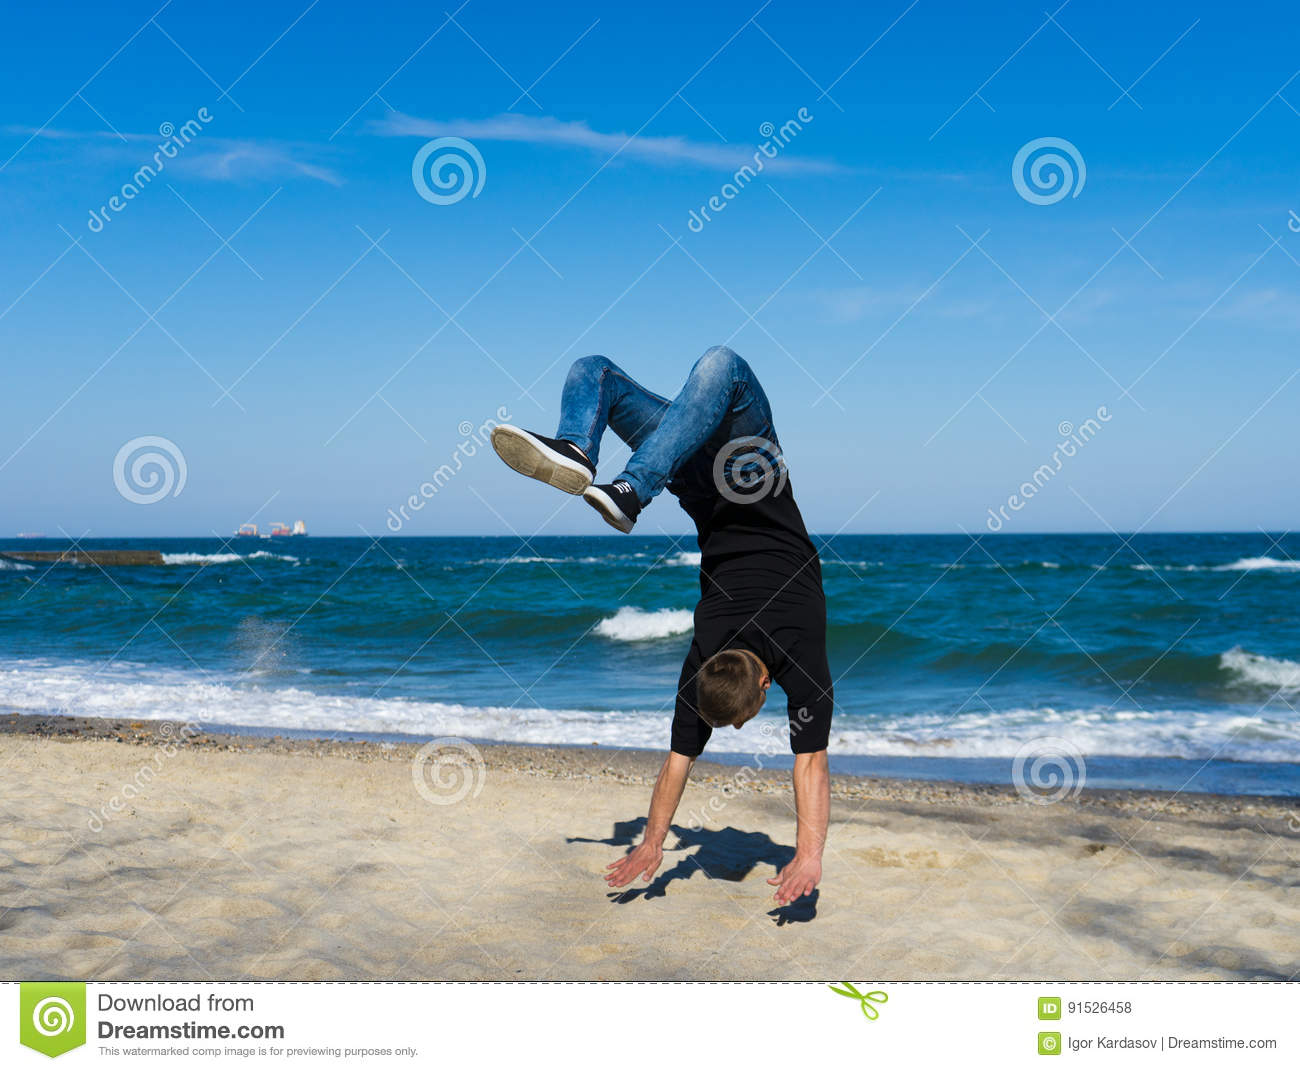 0b2770ff33a6eb Portrait of young parkour man doing flip or somersault on the beach.  Freezed moment of flip.